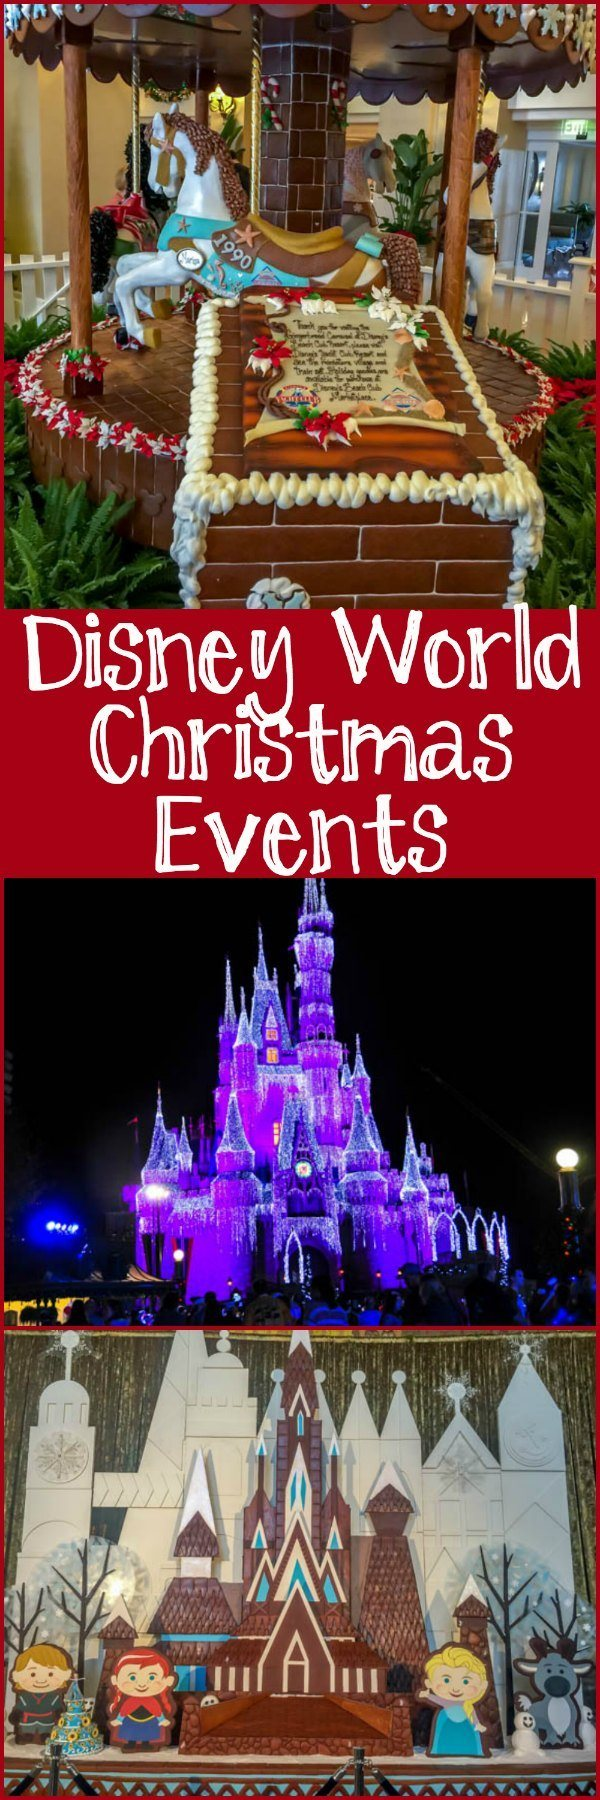 Walt Disney World Christmas Events, including Mickey's Very Merry Christmas Party, Christmas lights, resort decorations, and other holiday events.